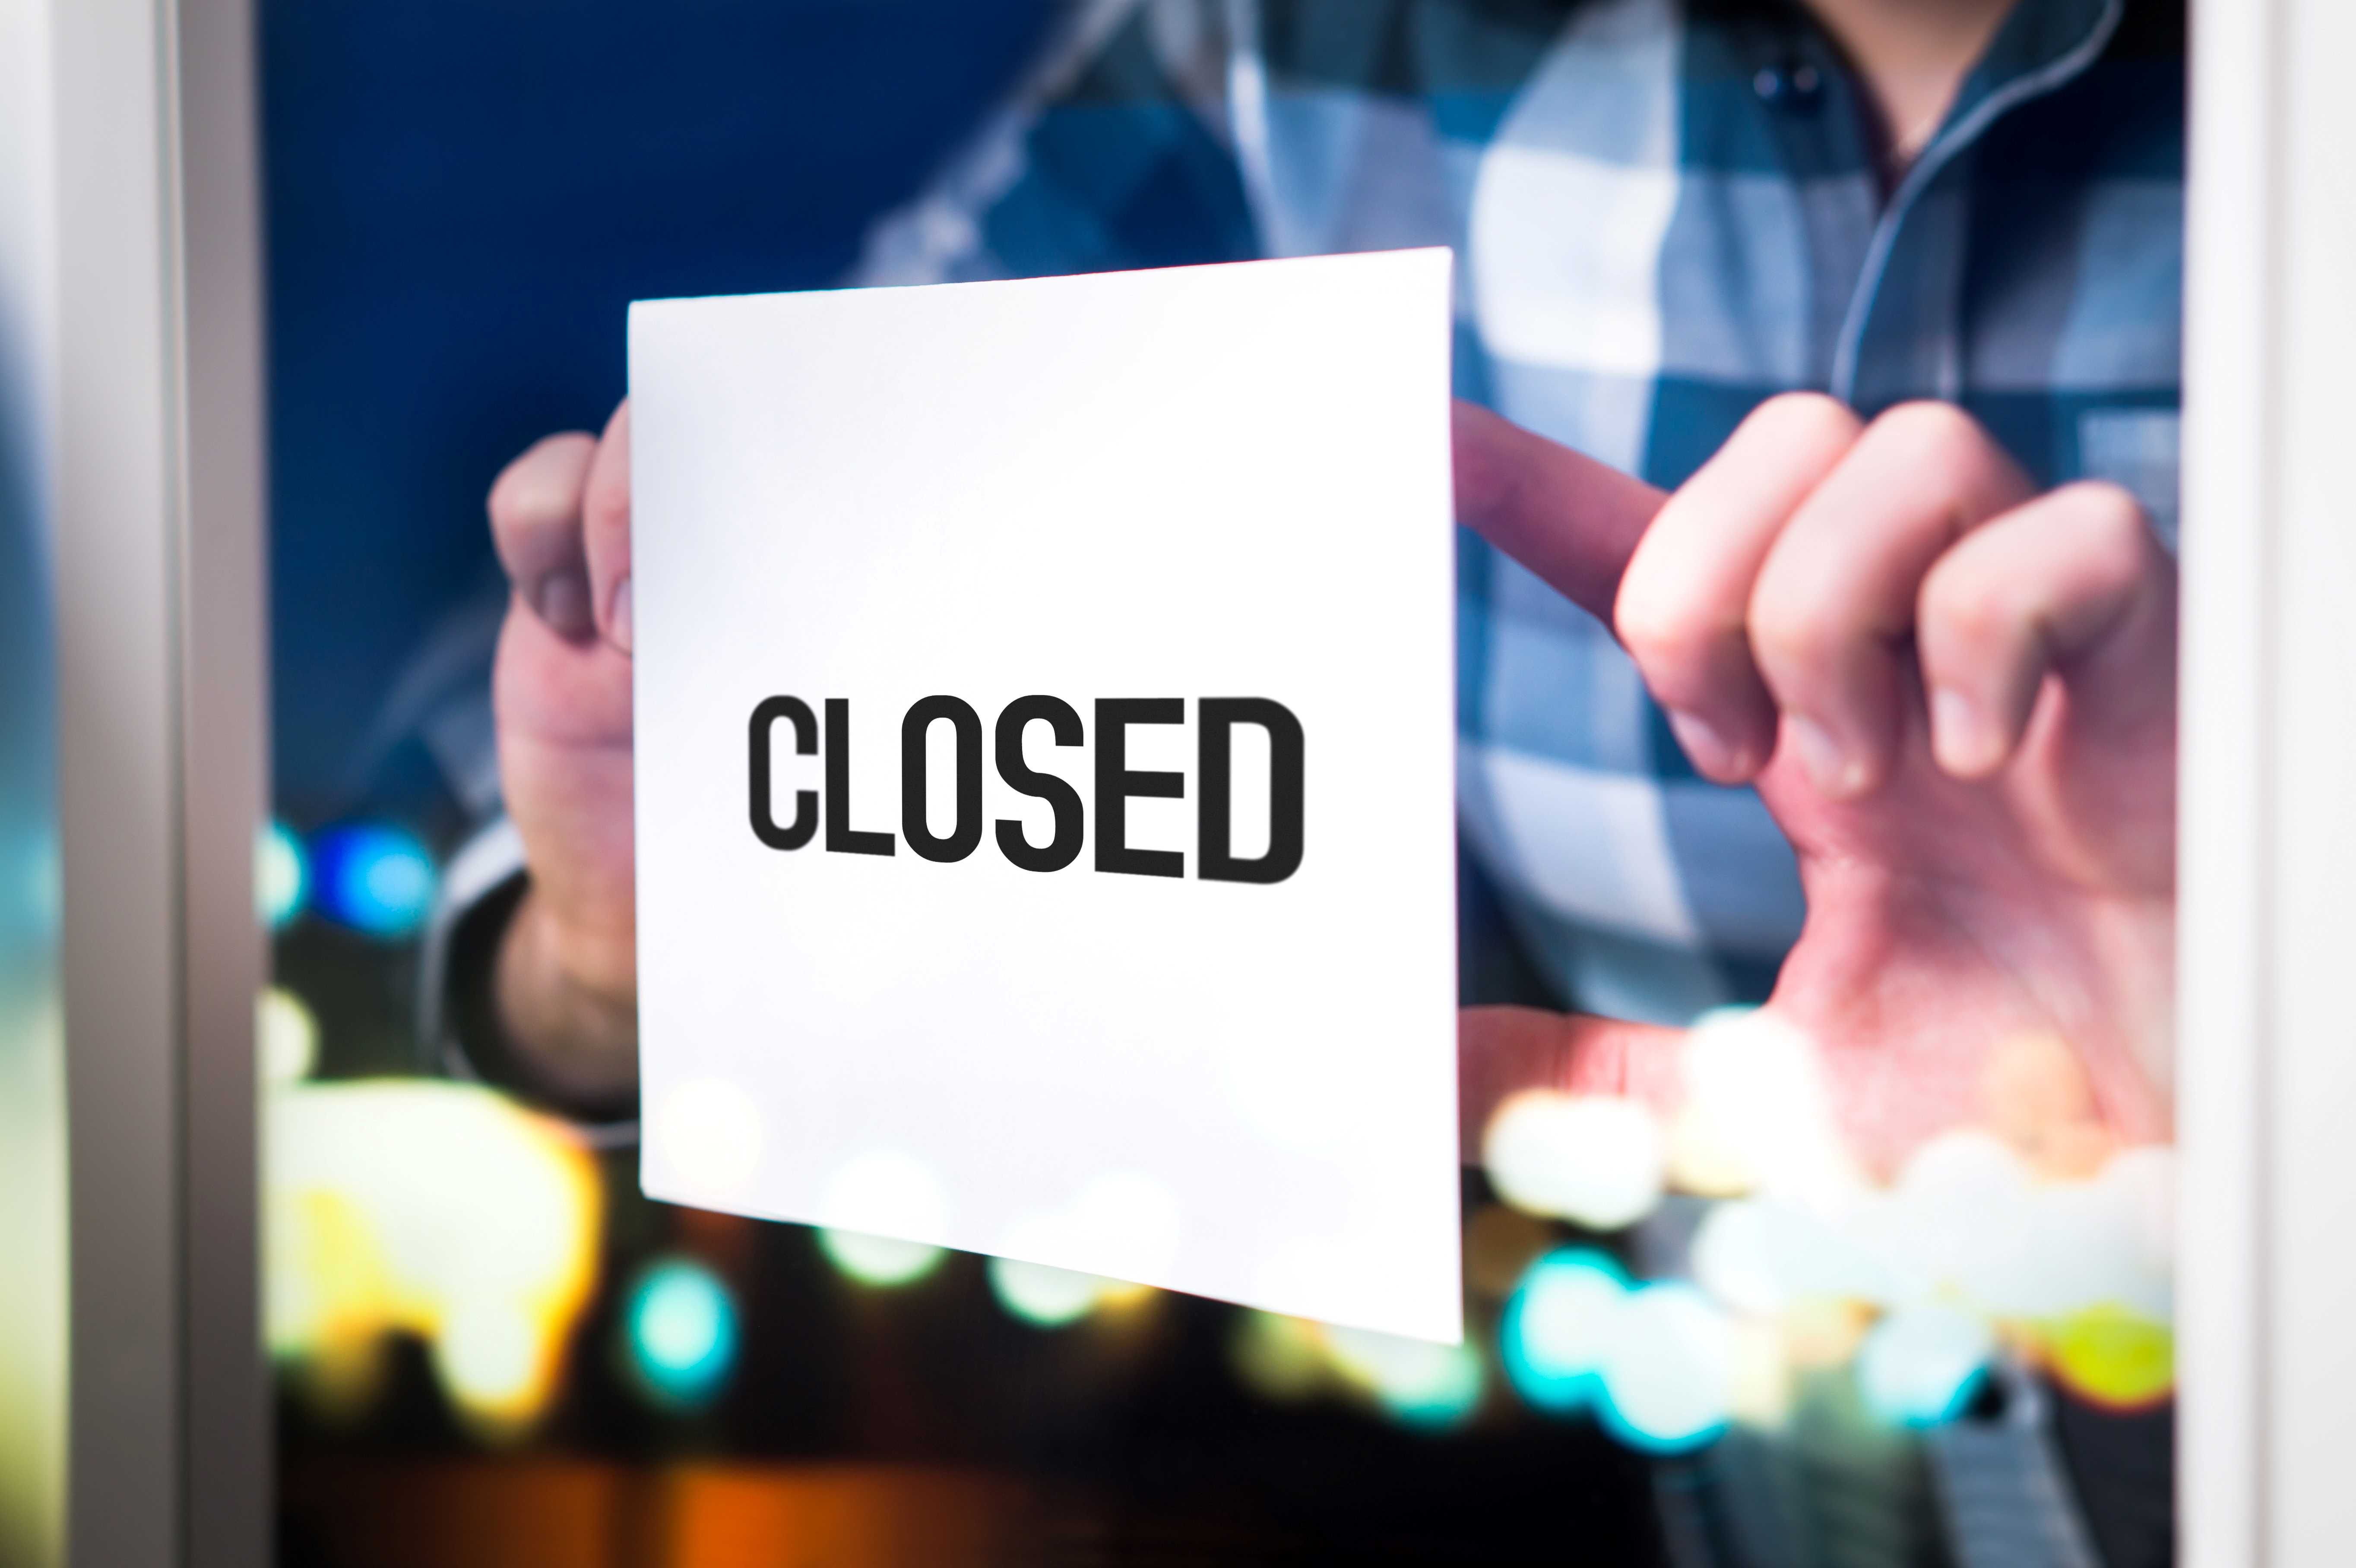 Business closed sign in window